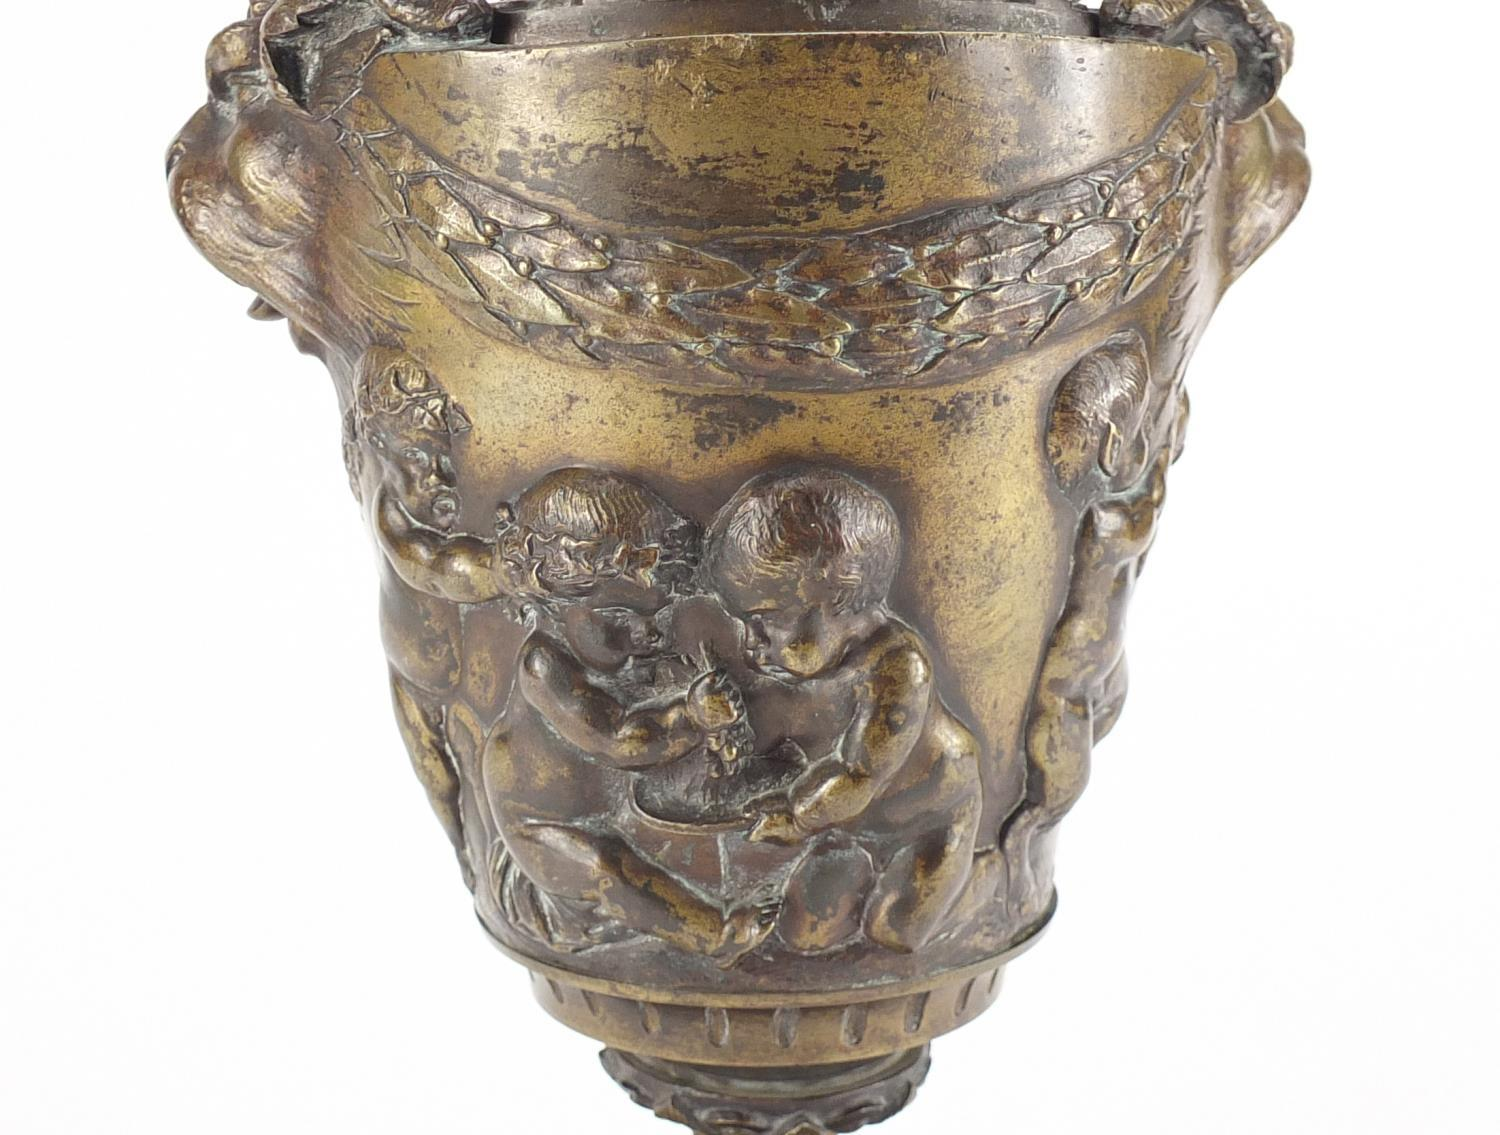 Lot 13 - 19th century classical patinated bronze urn and cover with rams head handles, cast in relief with